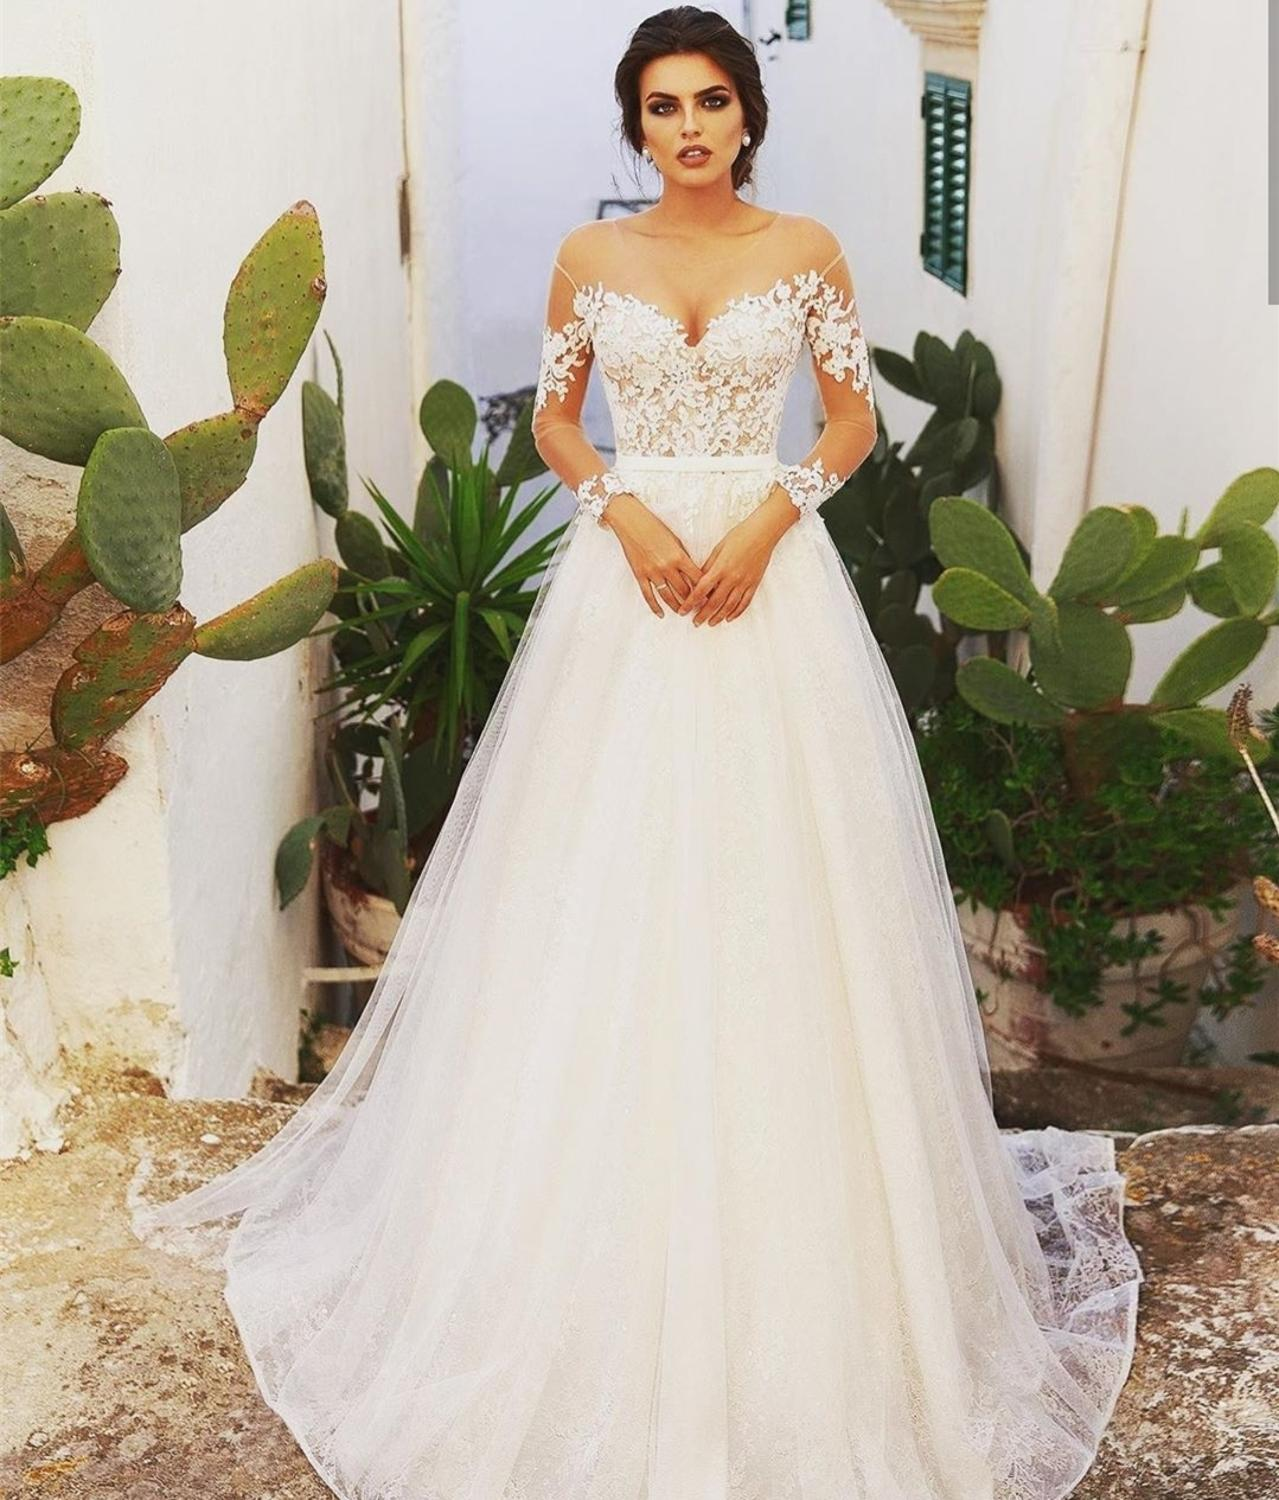 Wedding Dress 2020 Long Sleeve Sweetheart A-Line Tule Cap Sleeve With Long Train Sweetheart Vestidos De Novia Talles Grandes New